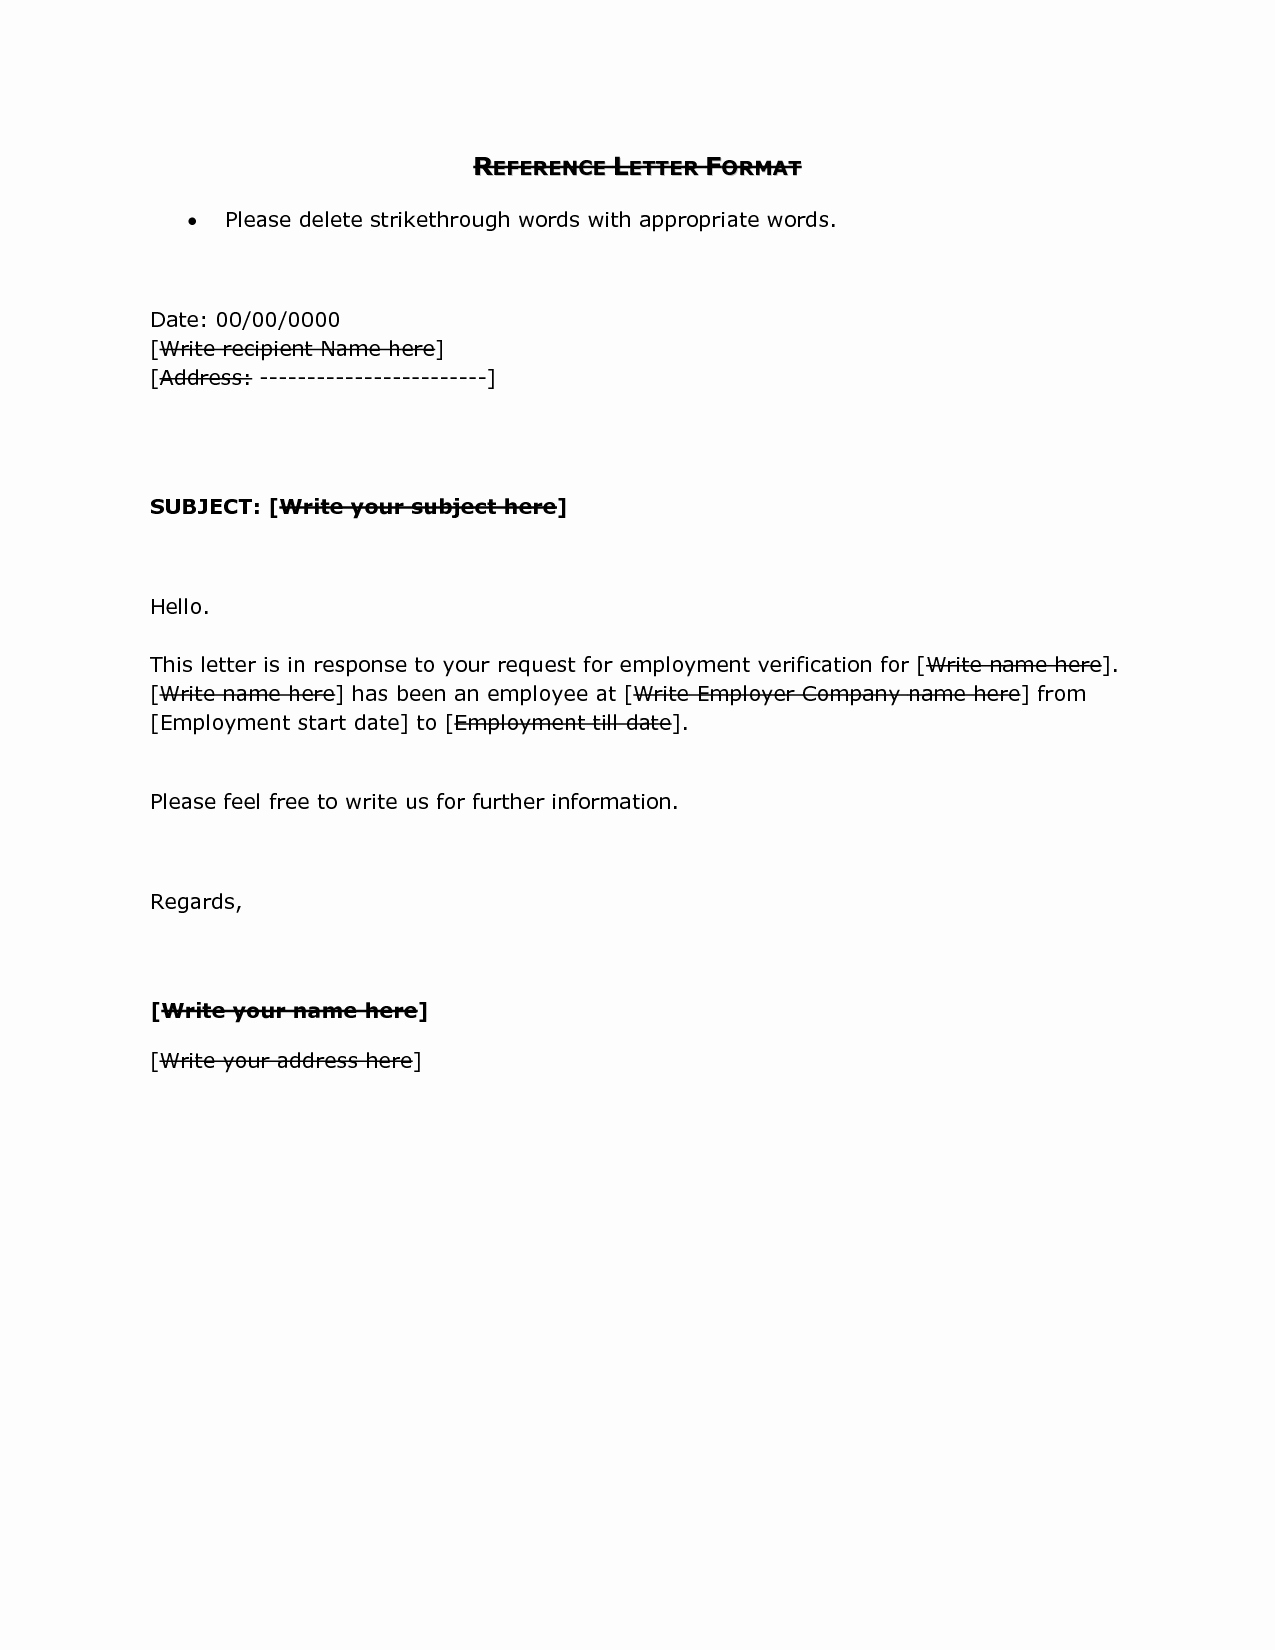 References Letter From Employer Elegant Reference Letter format Doc Reference Letter